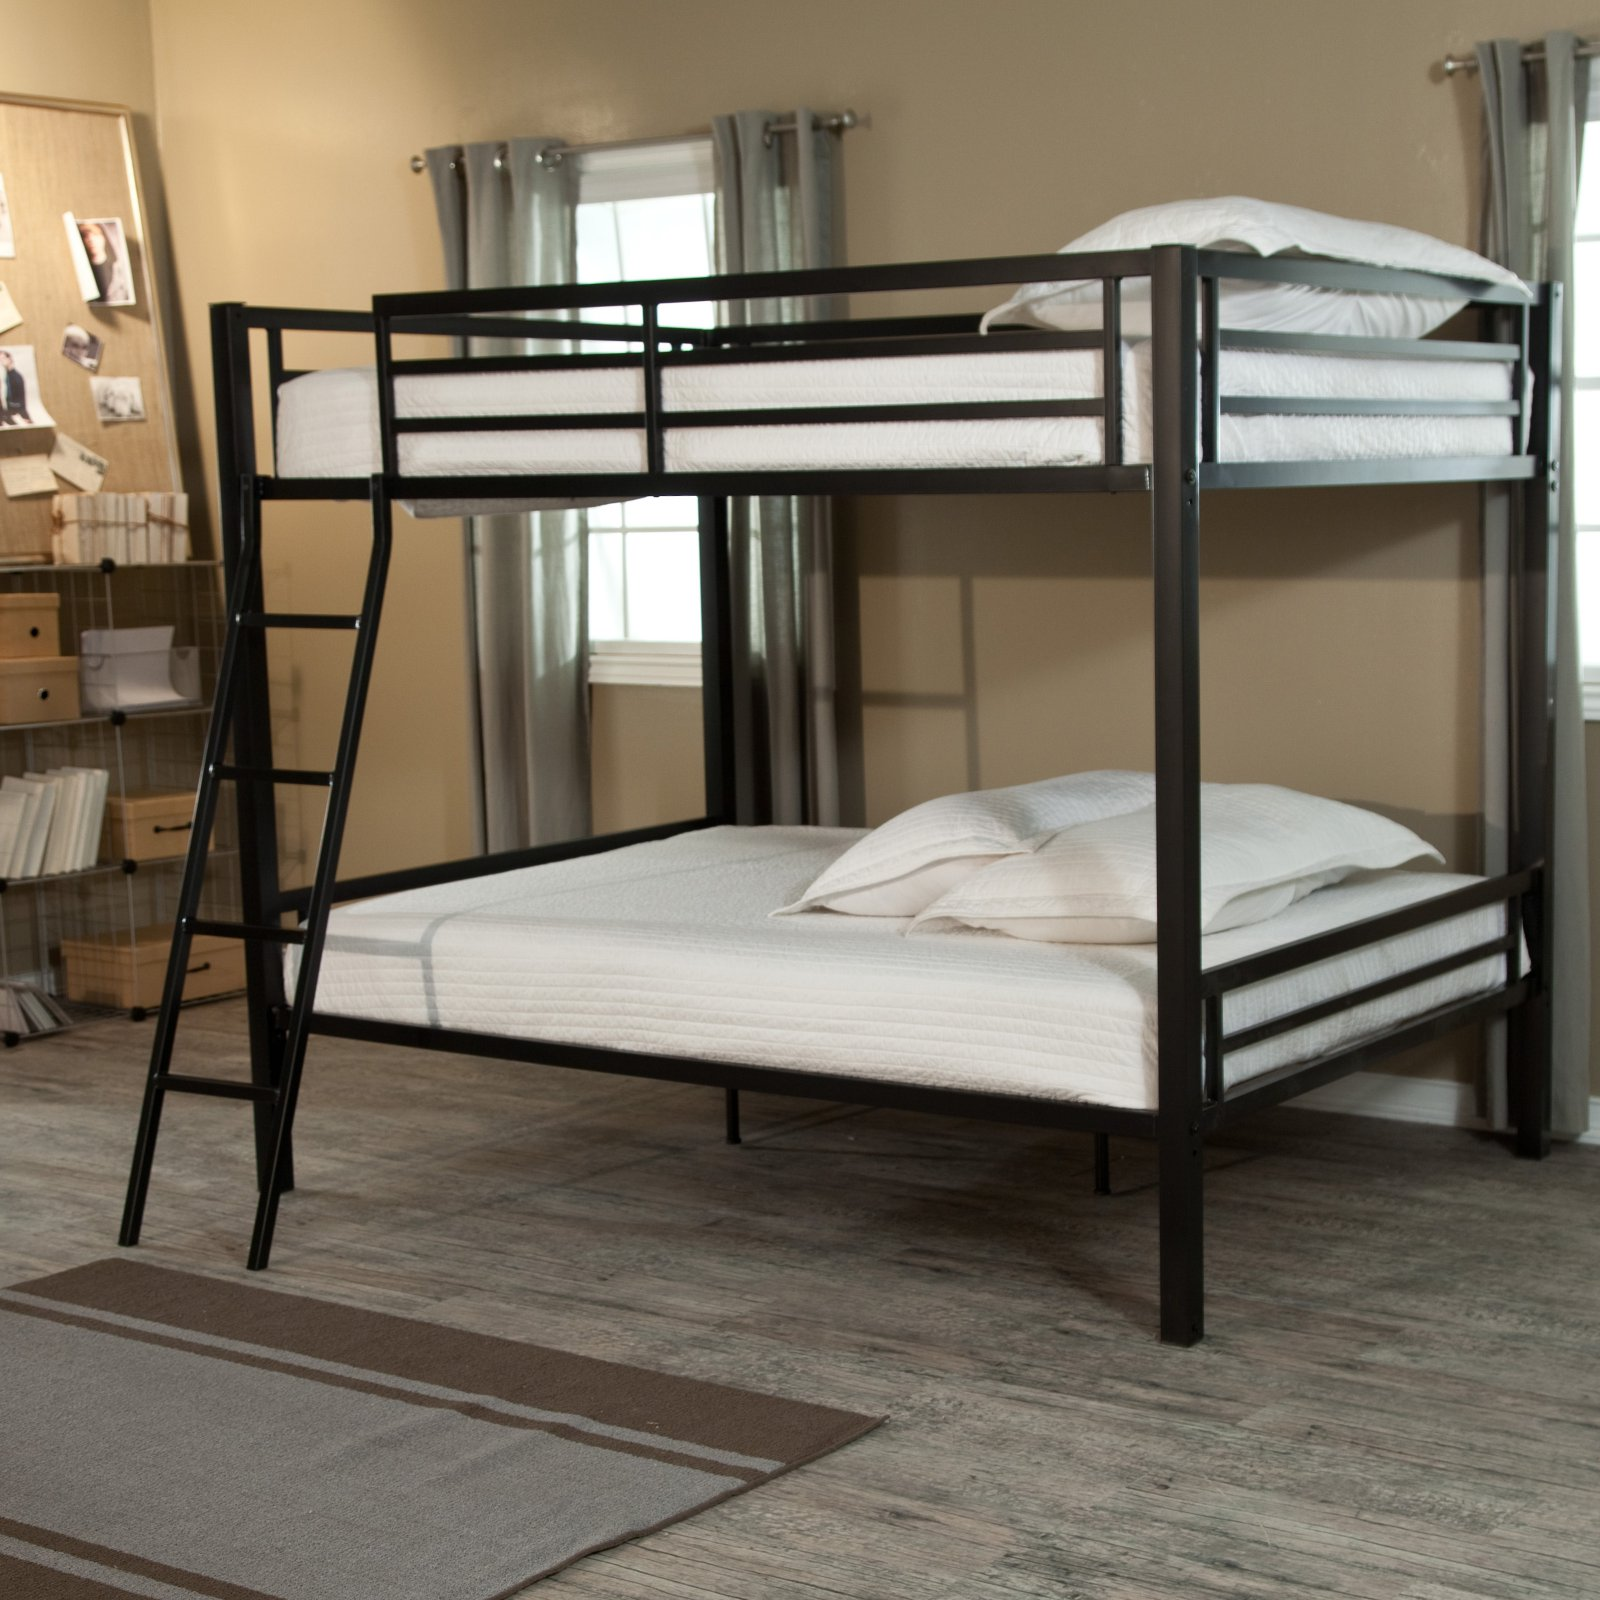 Duro Hanley Full over Full Bunk Bed - Black - BE1655BLK-KD SLT